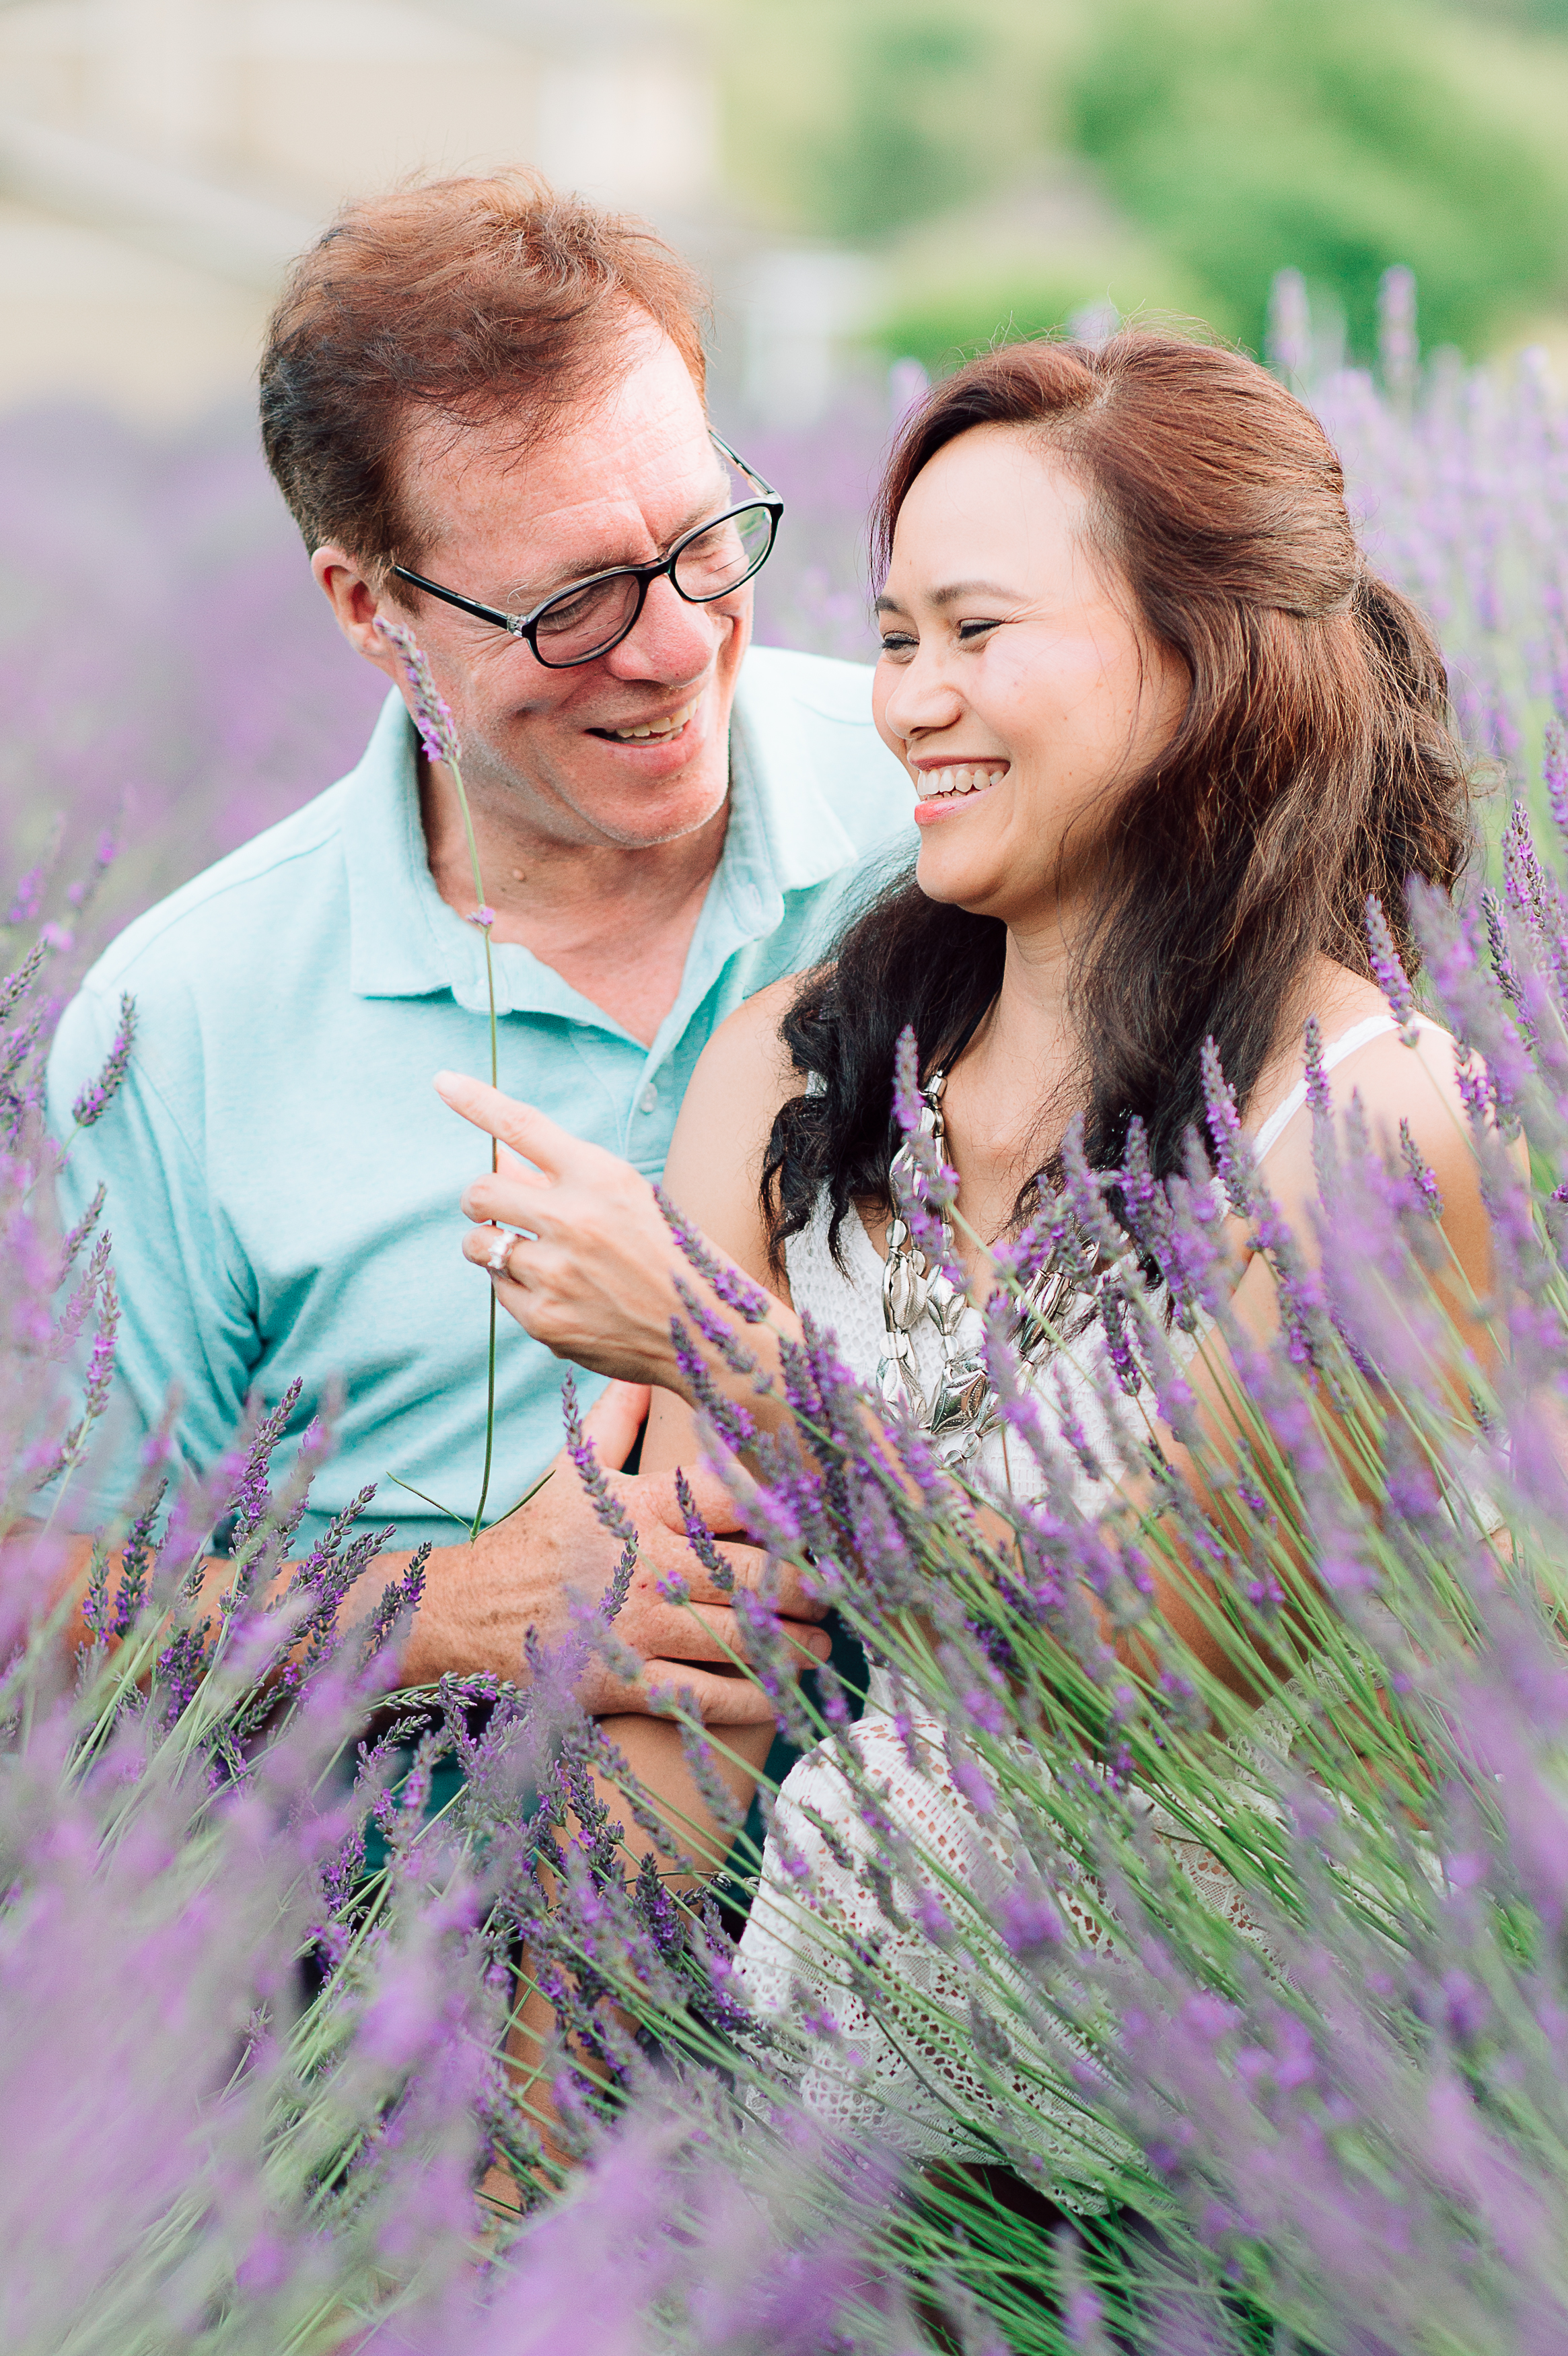 engagement_lavenderfield_youseephotography_LidiaOtto (33).jpg